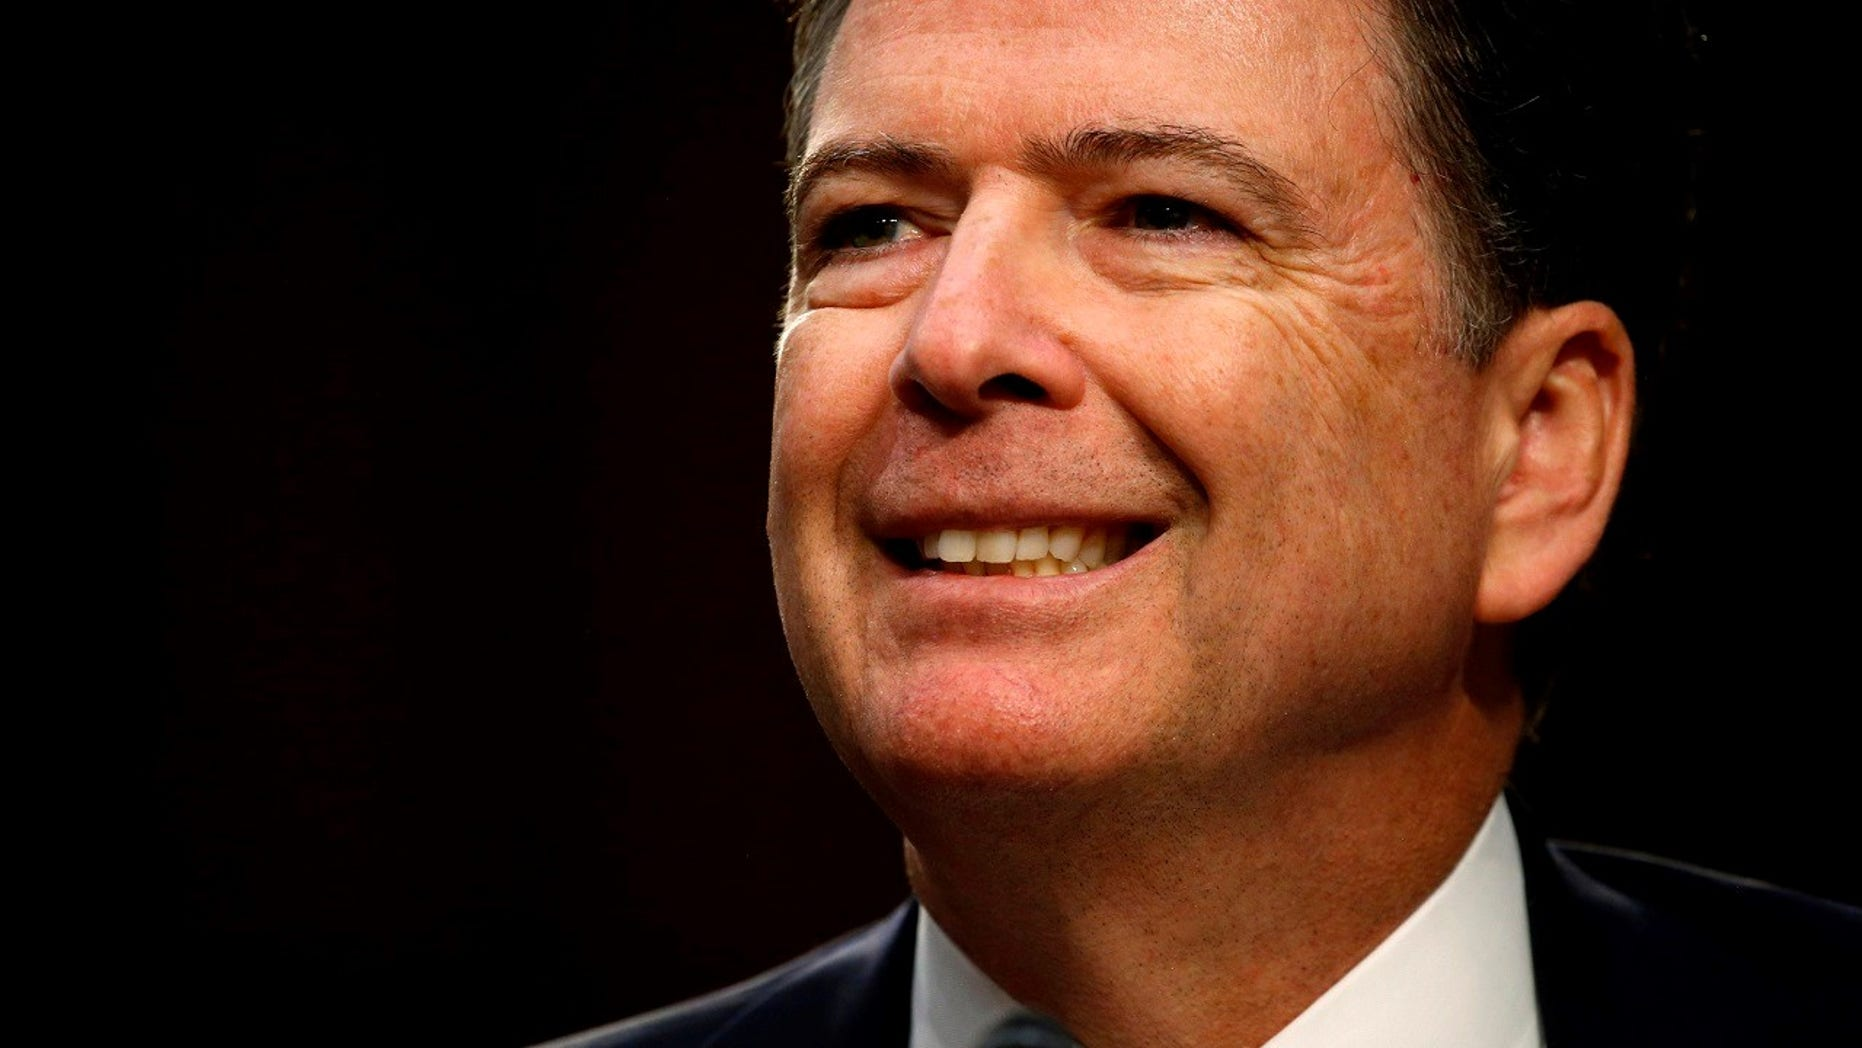 """The former FBI director finally changed his @FormerBu Twitter handle on Monday to @Comey and said he is """"glad to be part of the Twitterverse"""" — officially."""